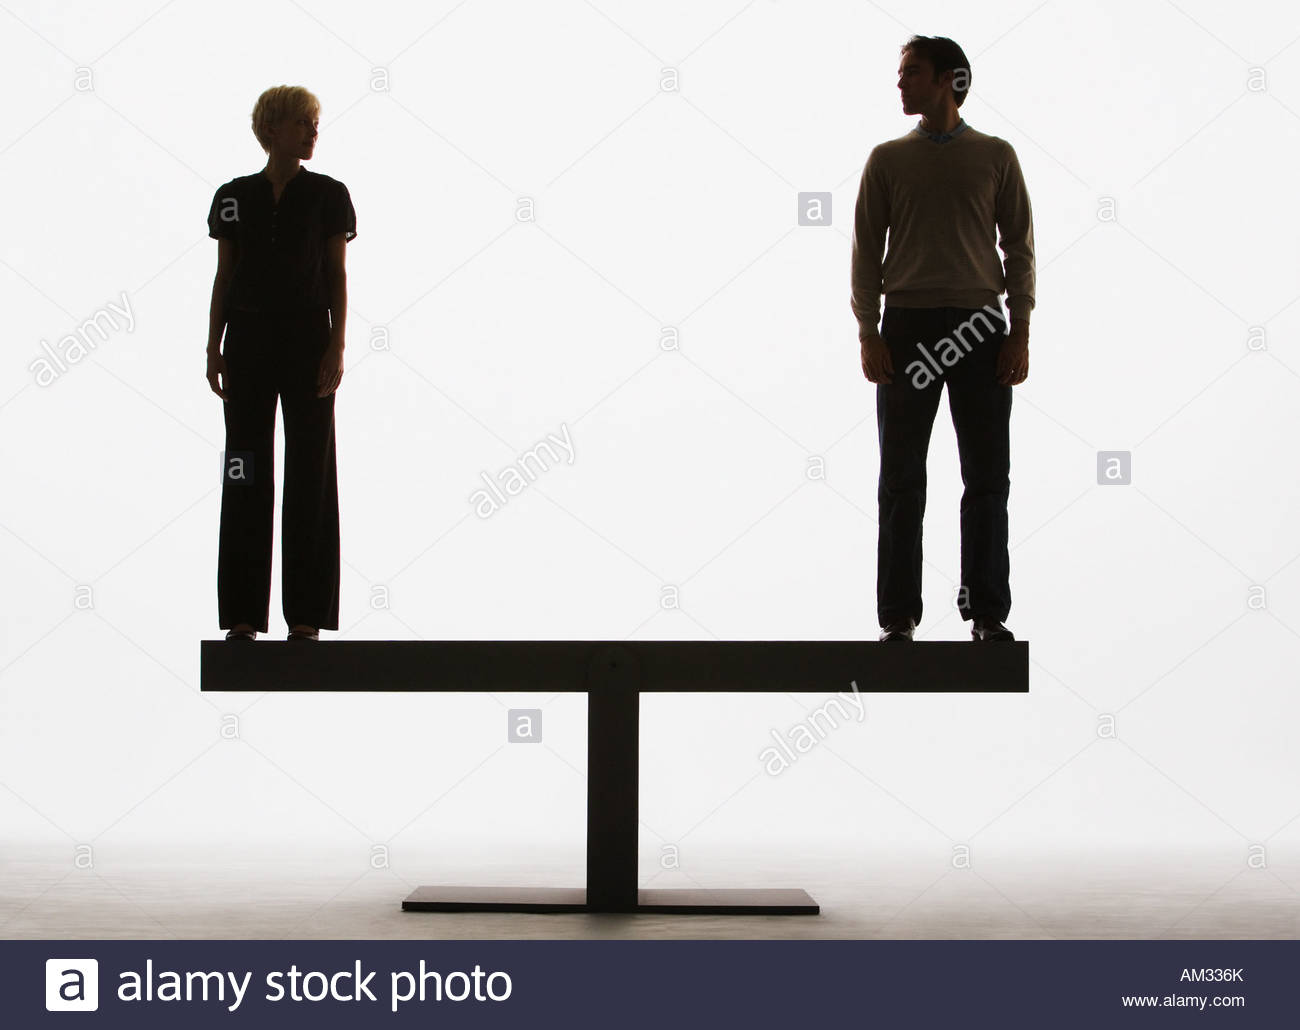 two people standing on top of a plank Stock Photo